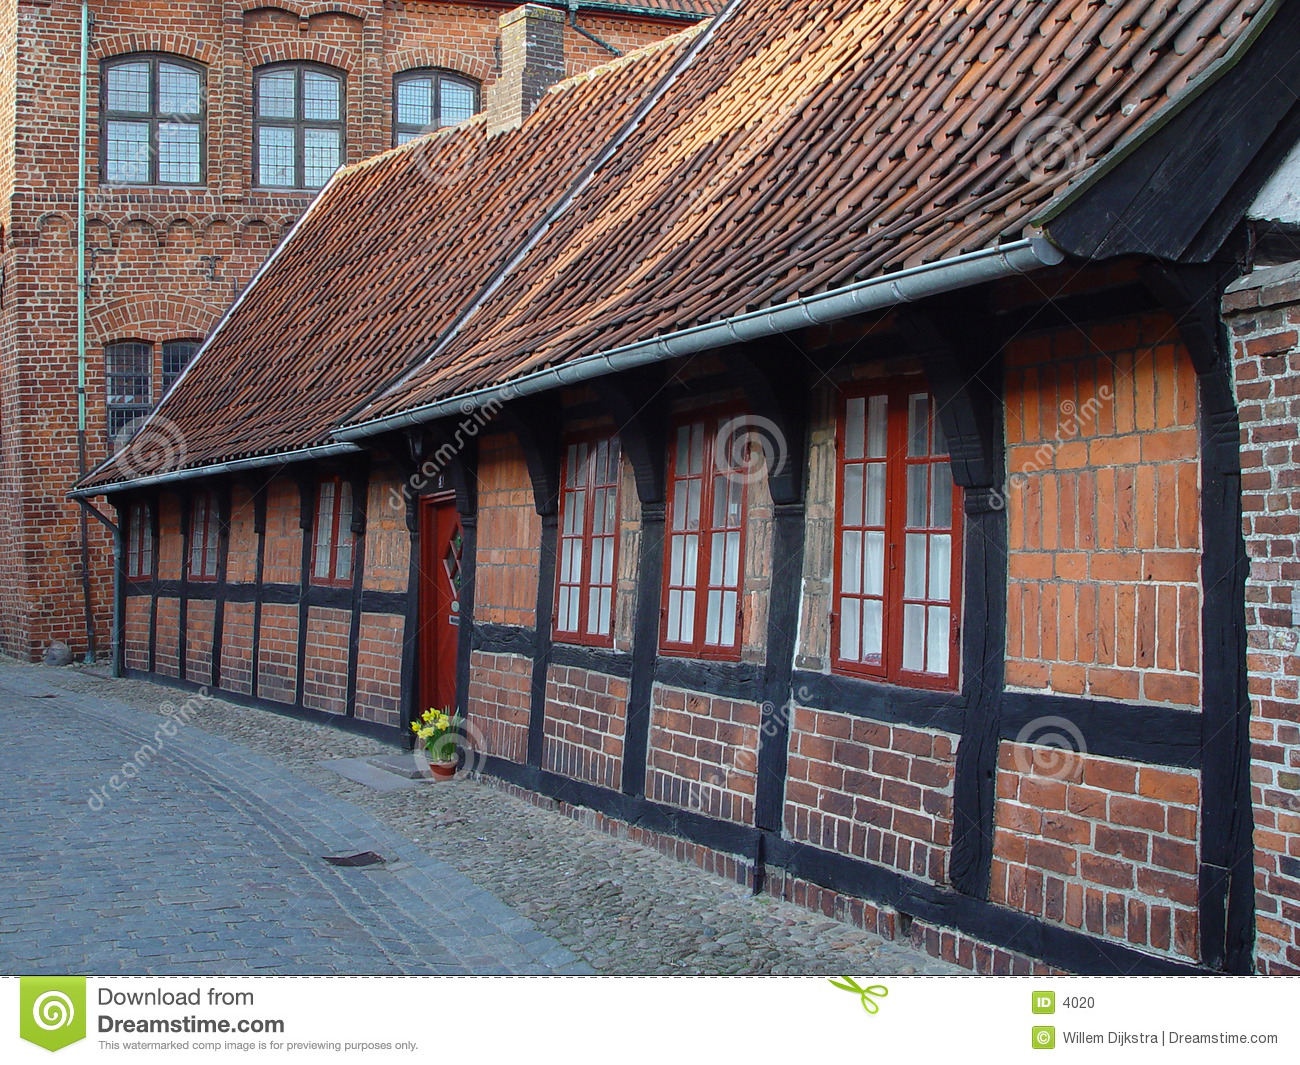 House in Ribe